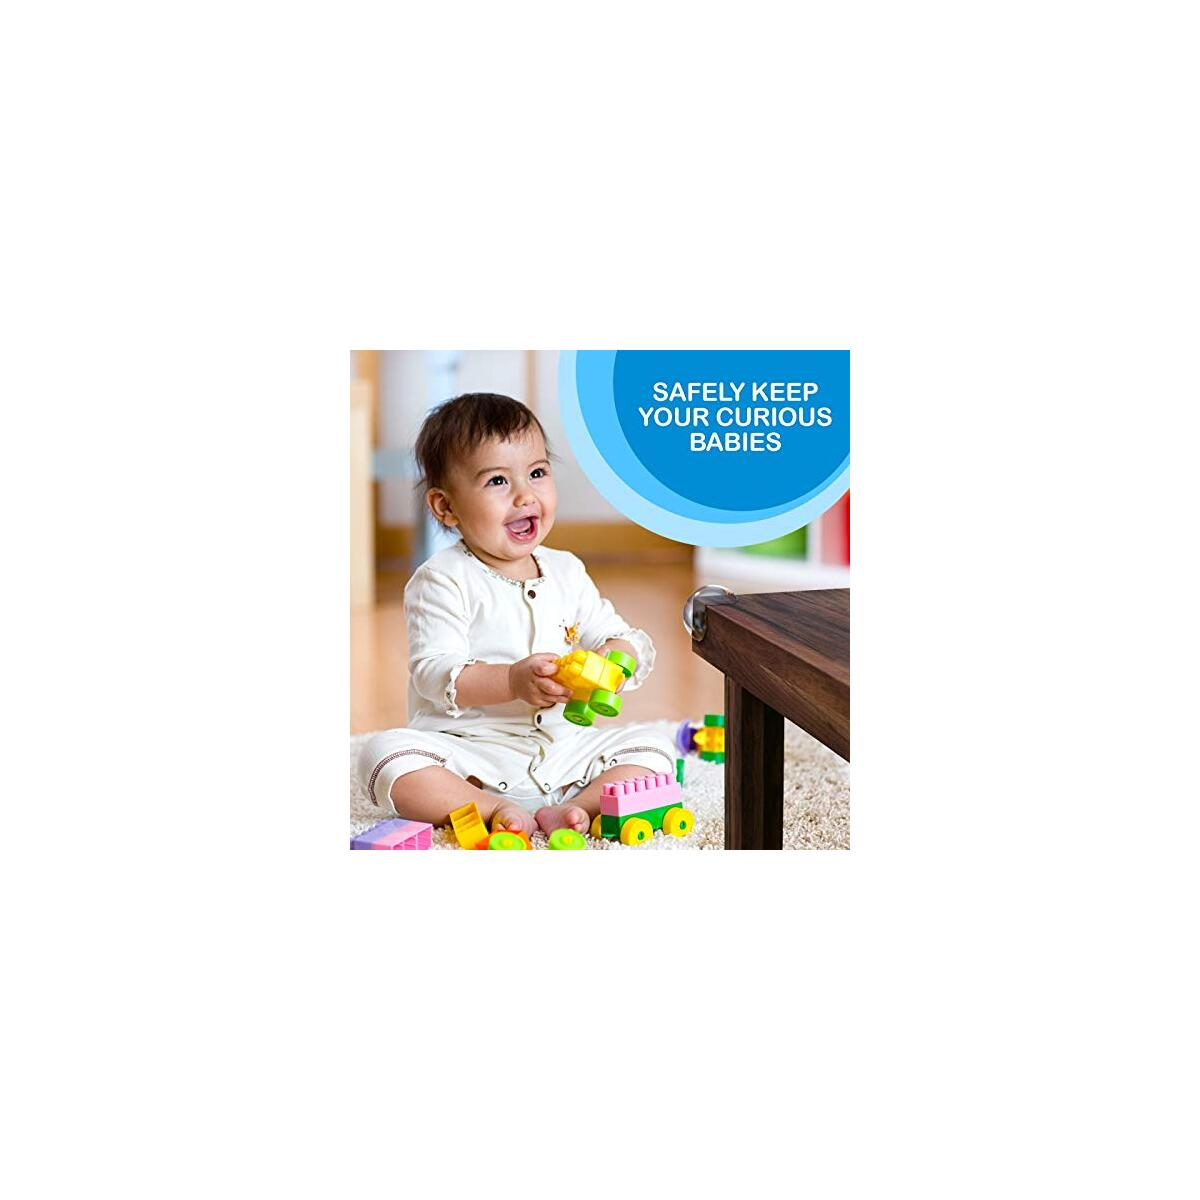 Kids Clear Corner Guards -20 Pack + Free Gift- Child Safety Sharp Corner Protector